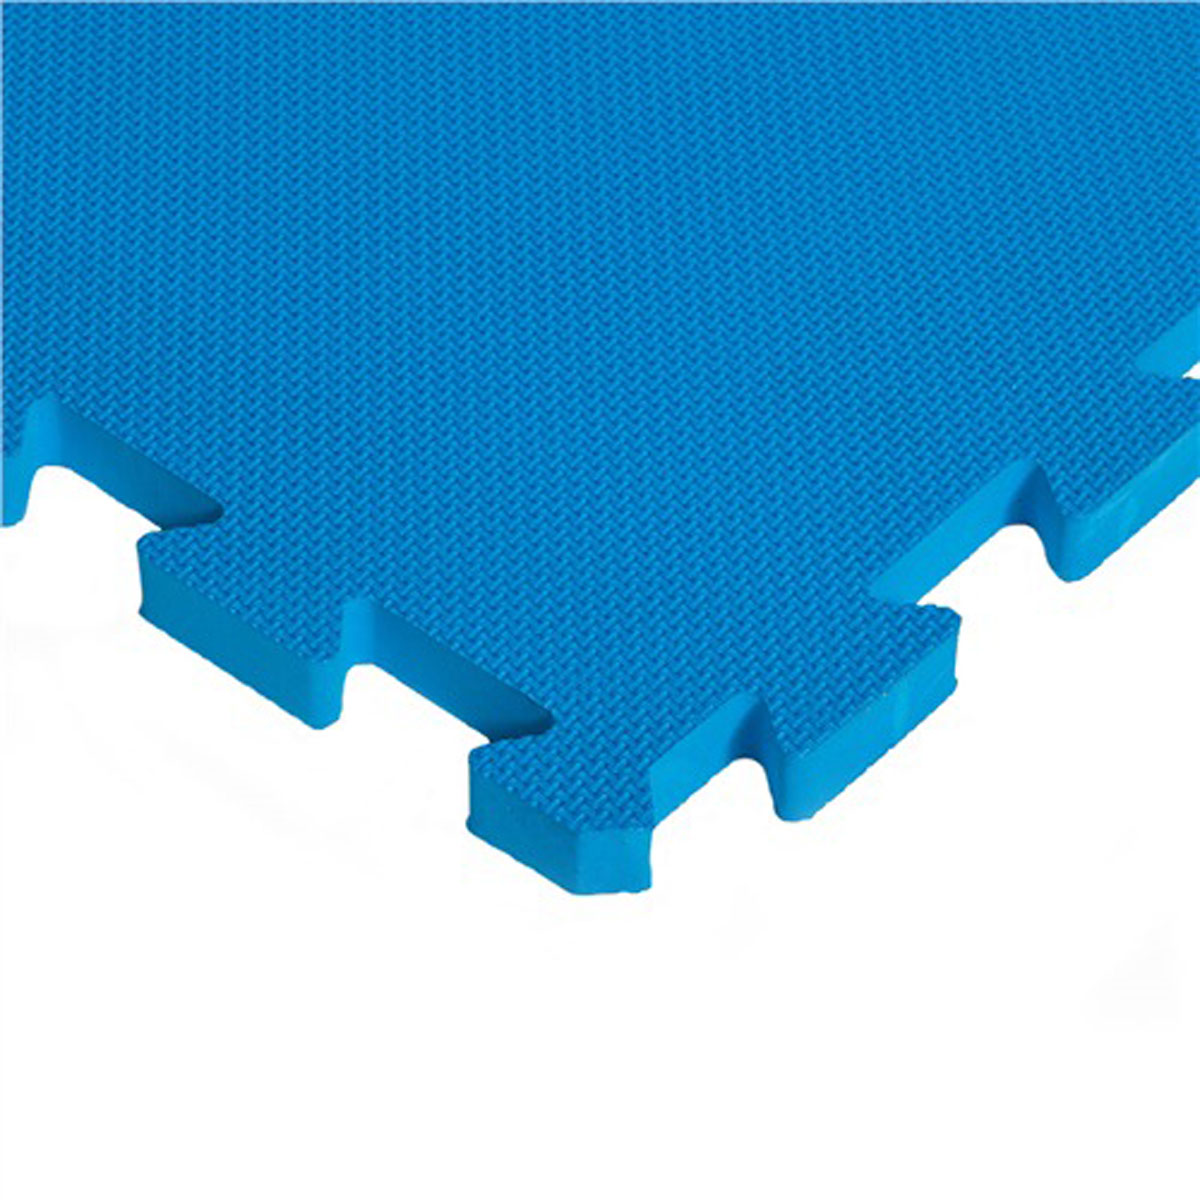 CENTURY PUZZLE MAT BLUE On Sale Only $55.27